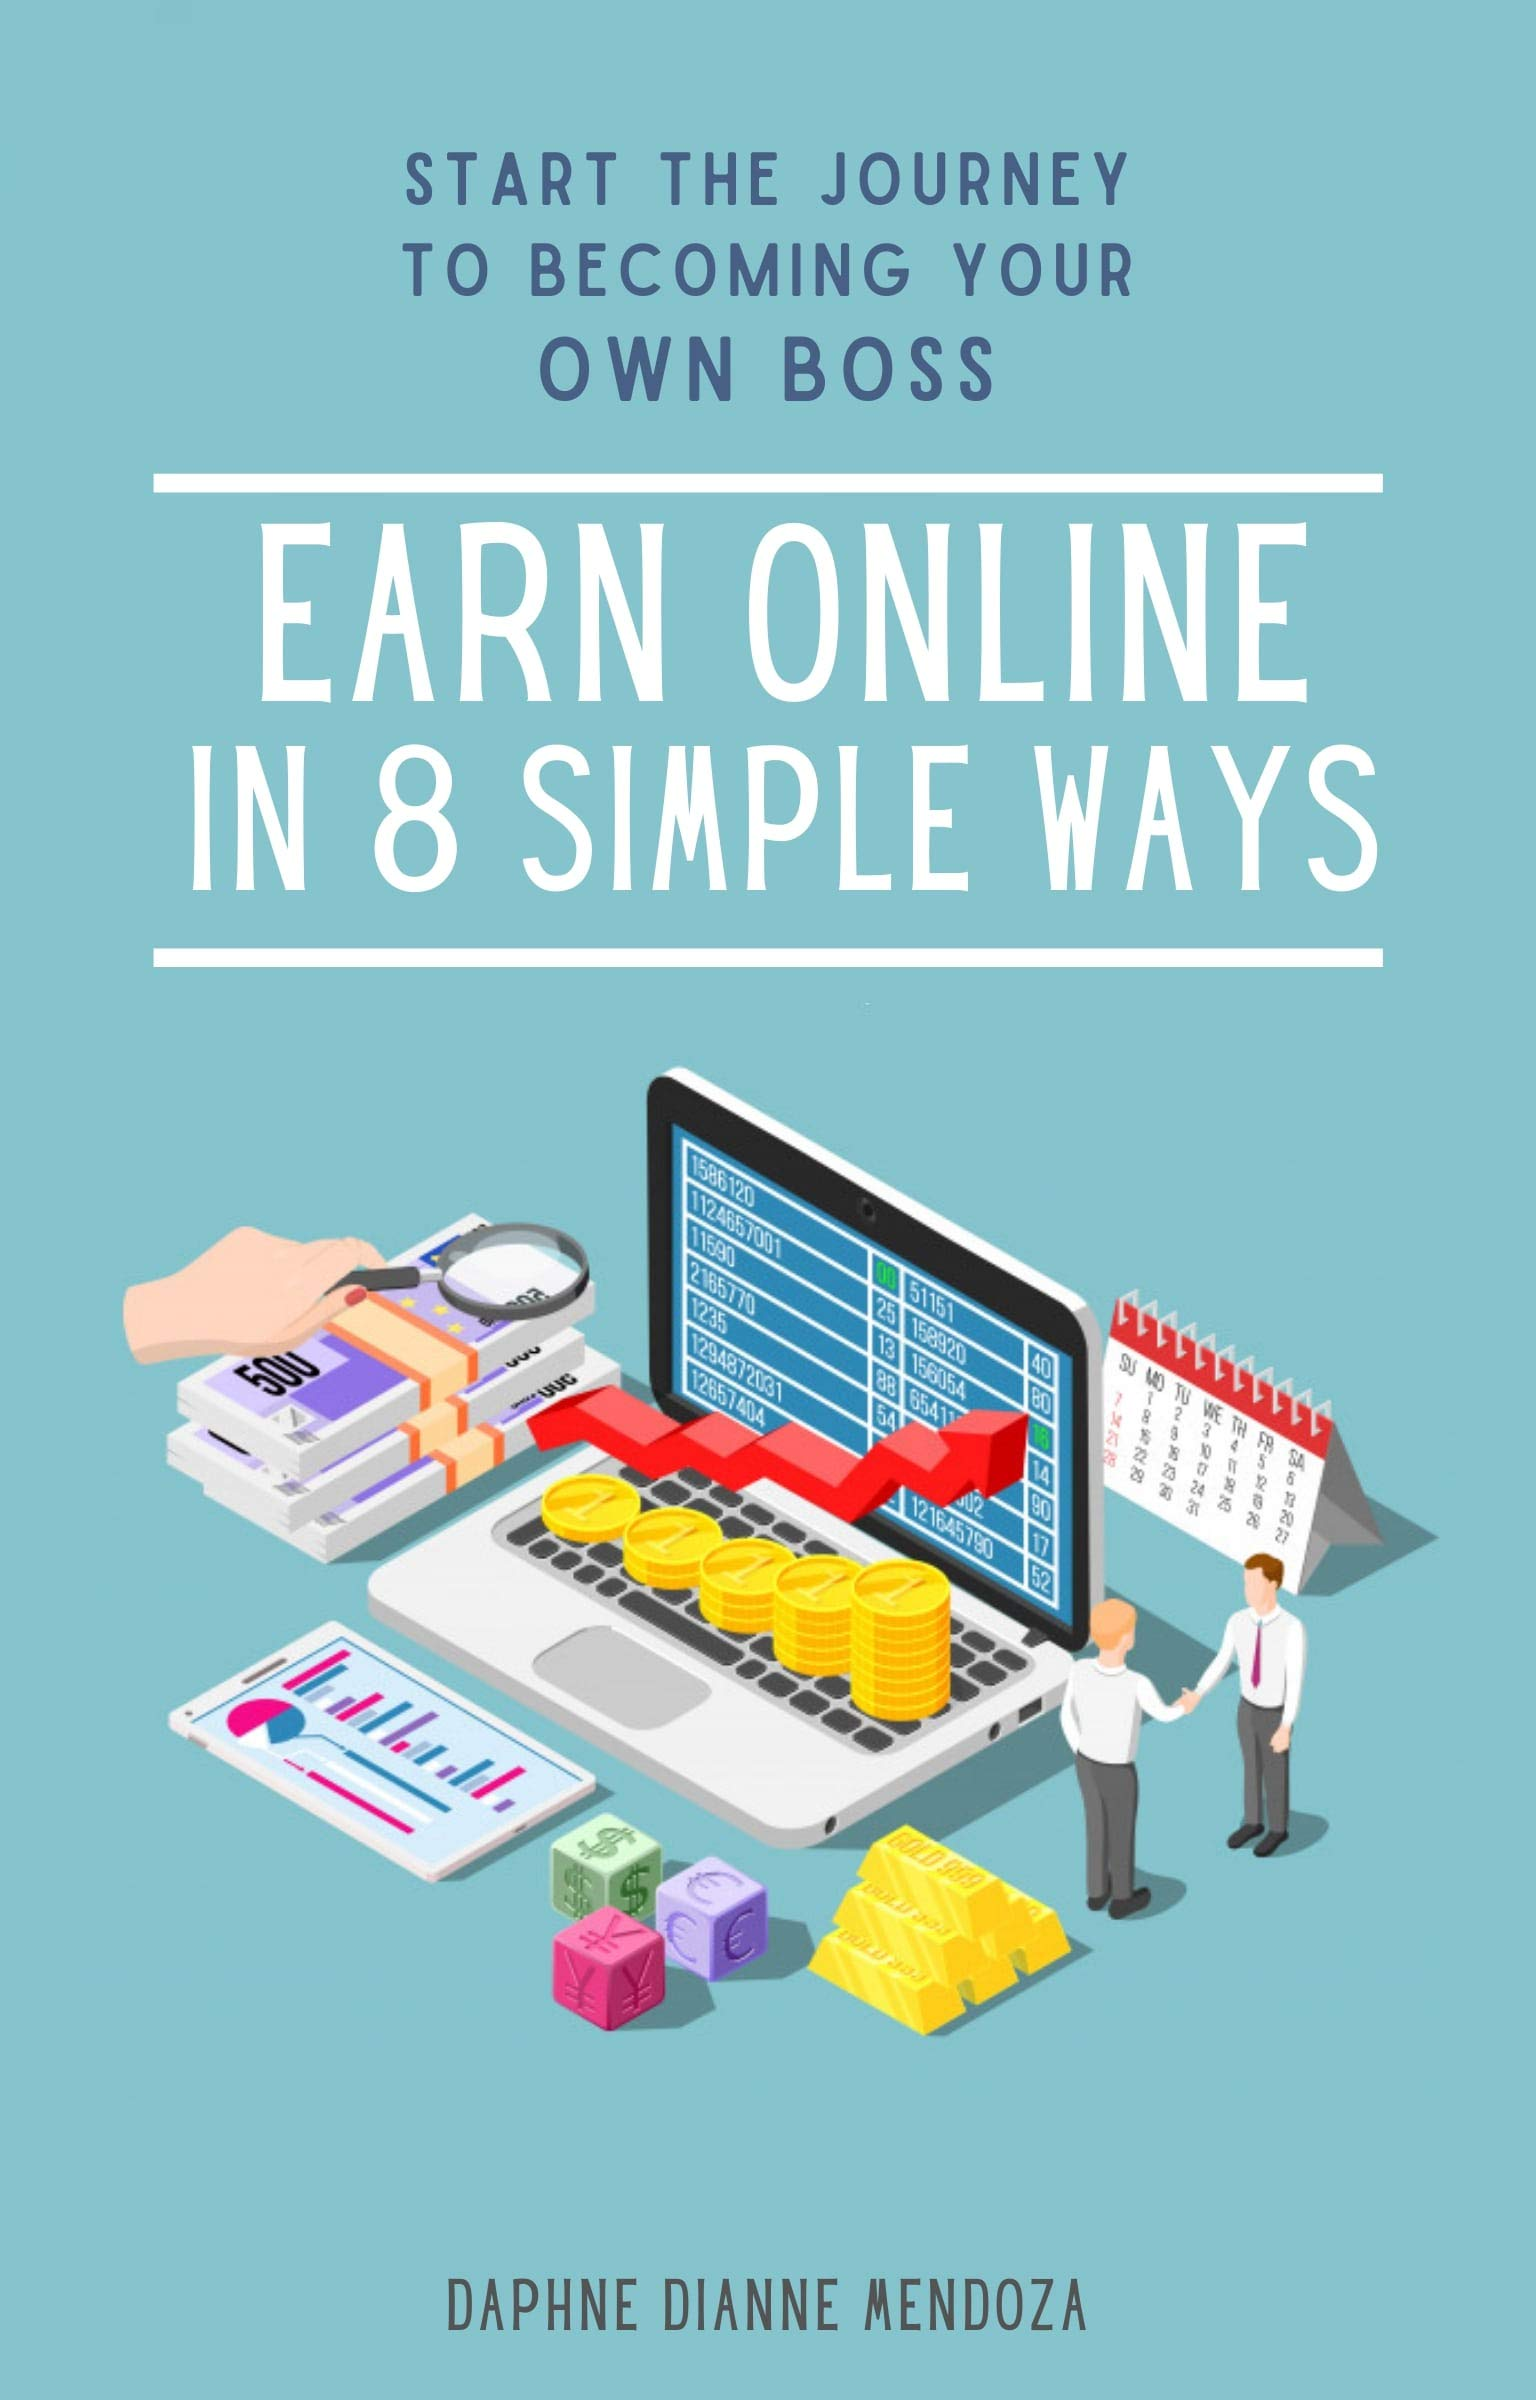 Start the Journey to Becoming Your Own Boss: Earn Online in 8 Simple Ways